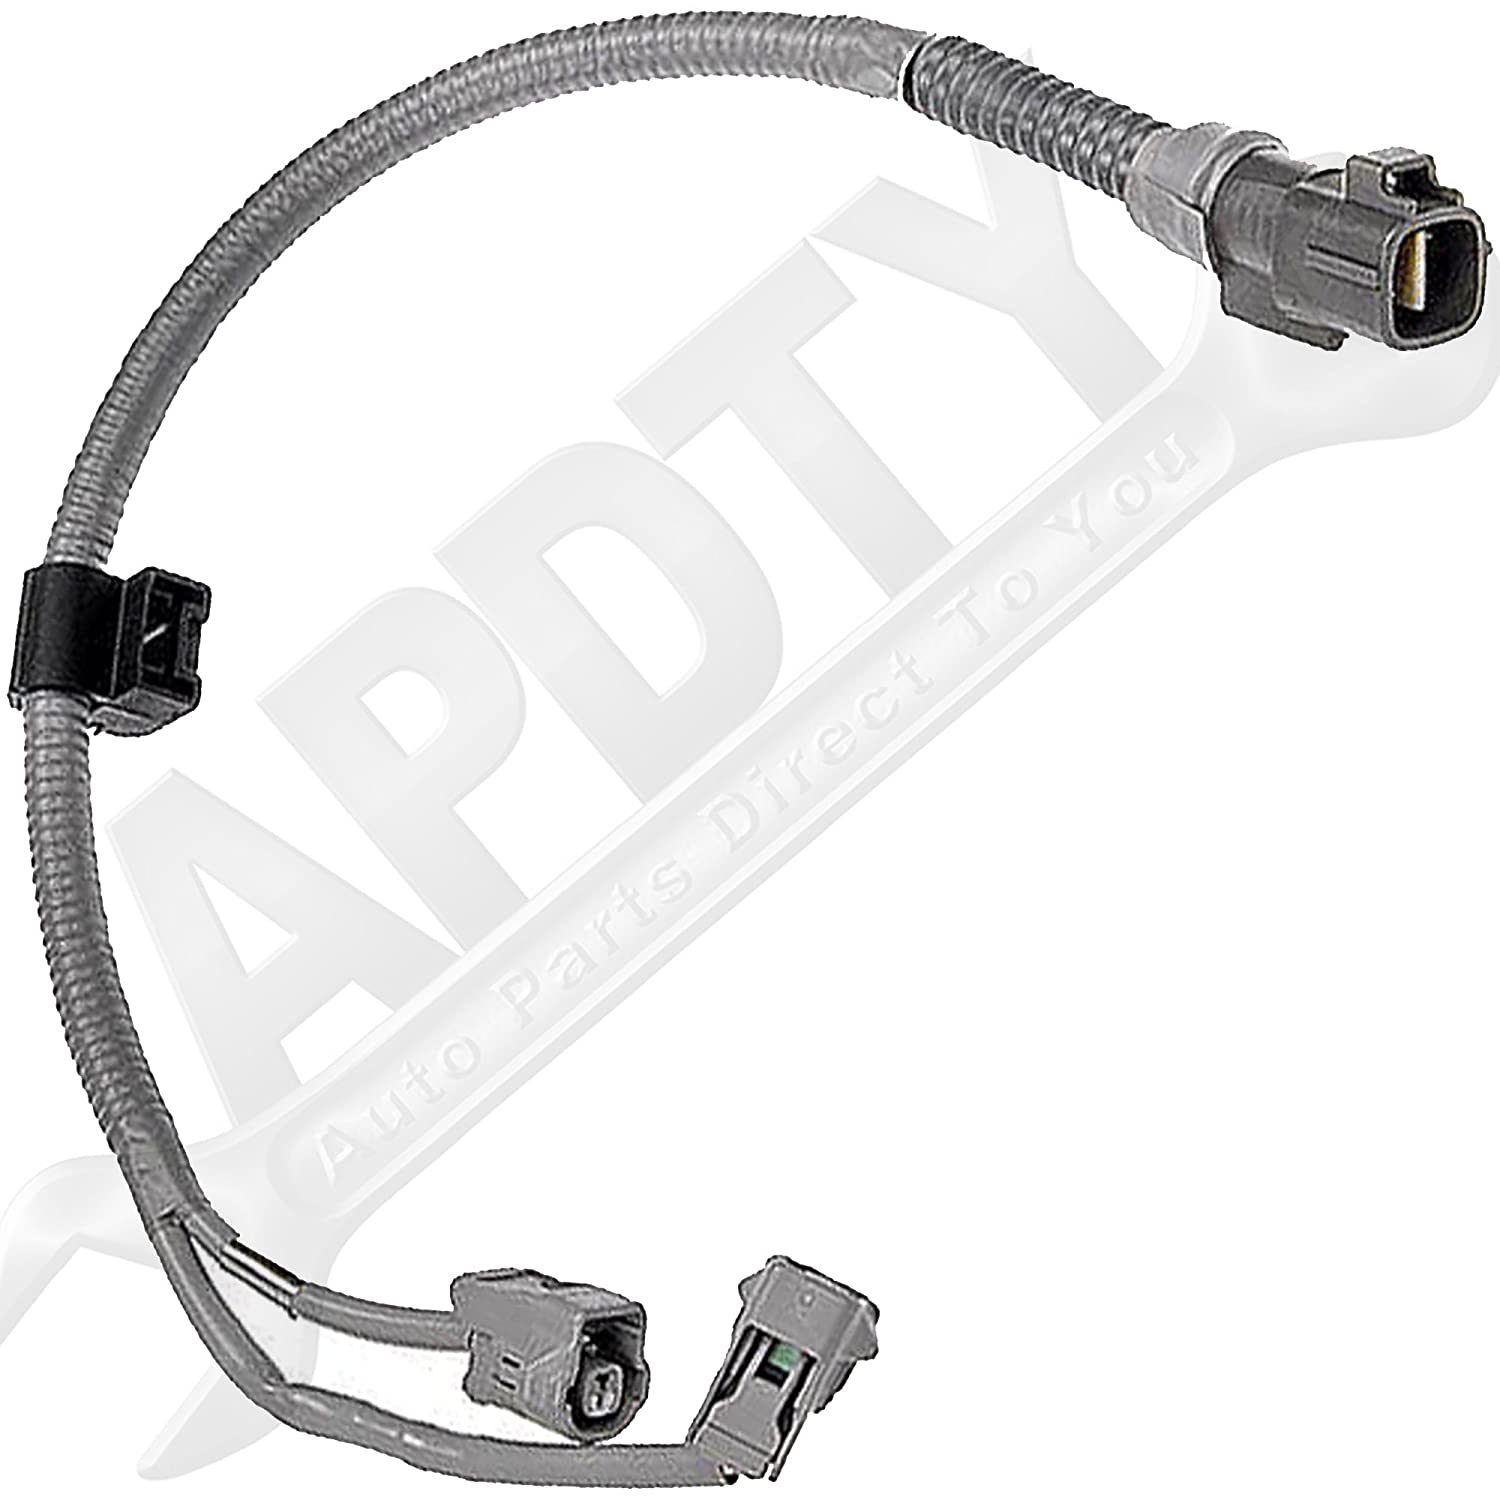 71uH8 9KmtL._SL1500_ amazon com apdty 028143 engine knock sensor wiring harness lexus es300 knock sensor wiring harness at webbmarketing.co